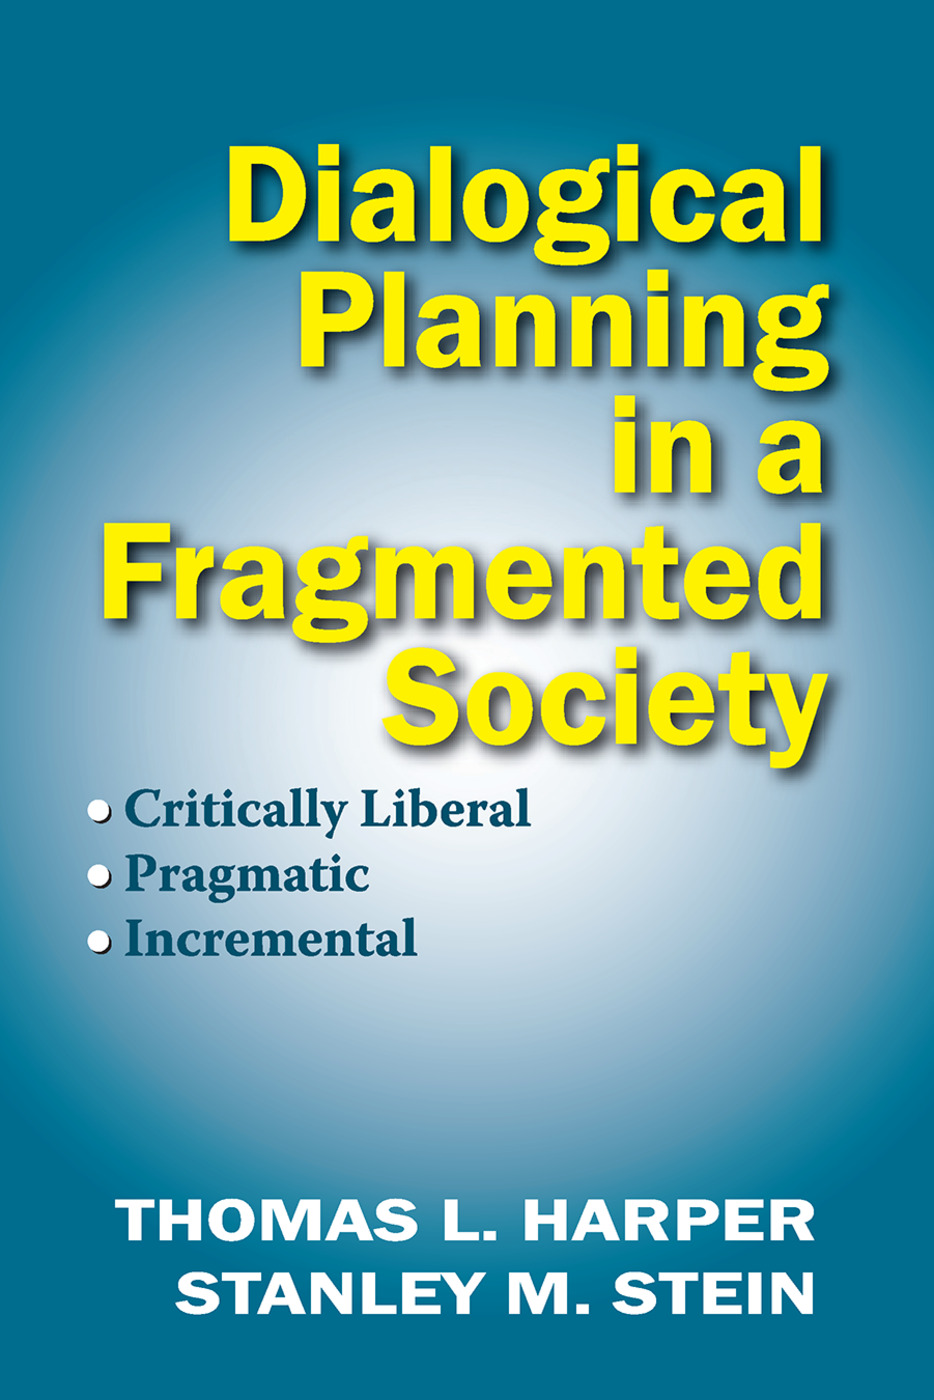 Dialogical Planning in a Fragmented Society